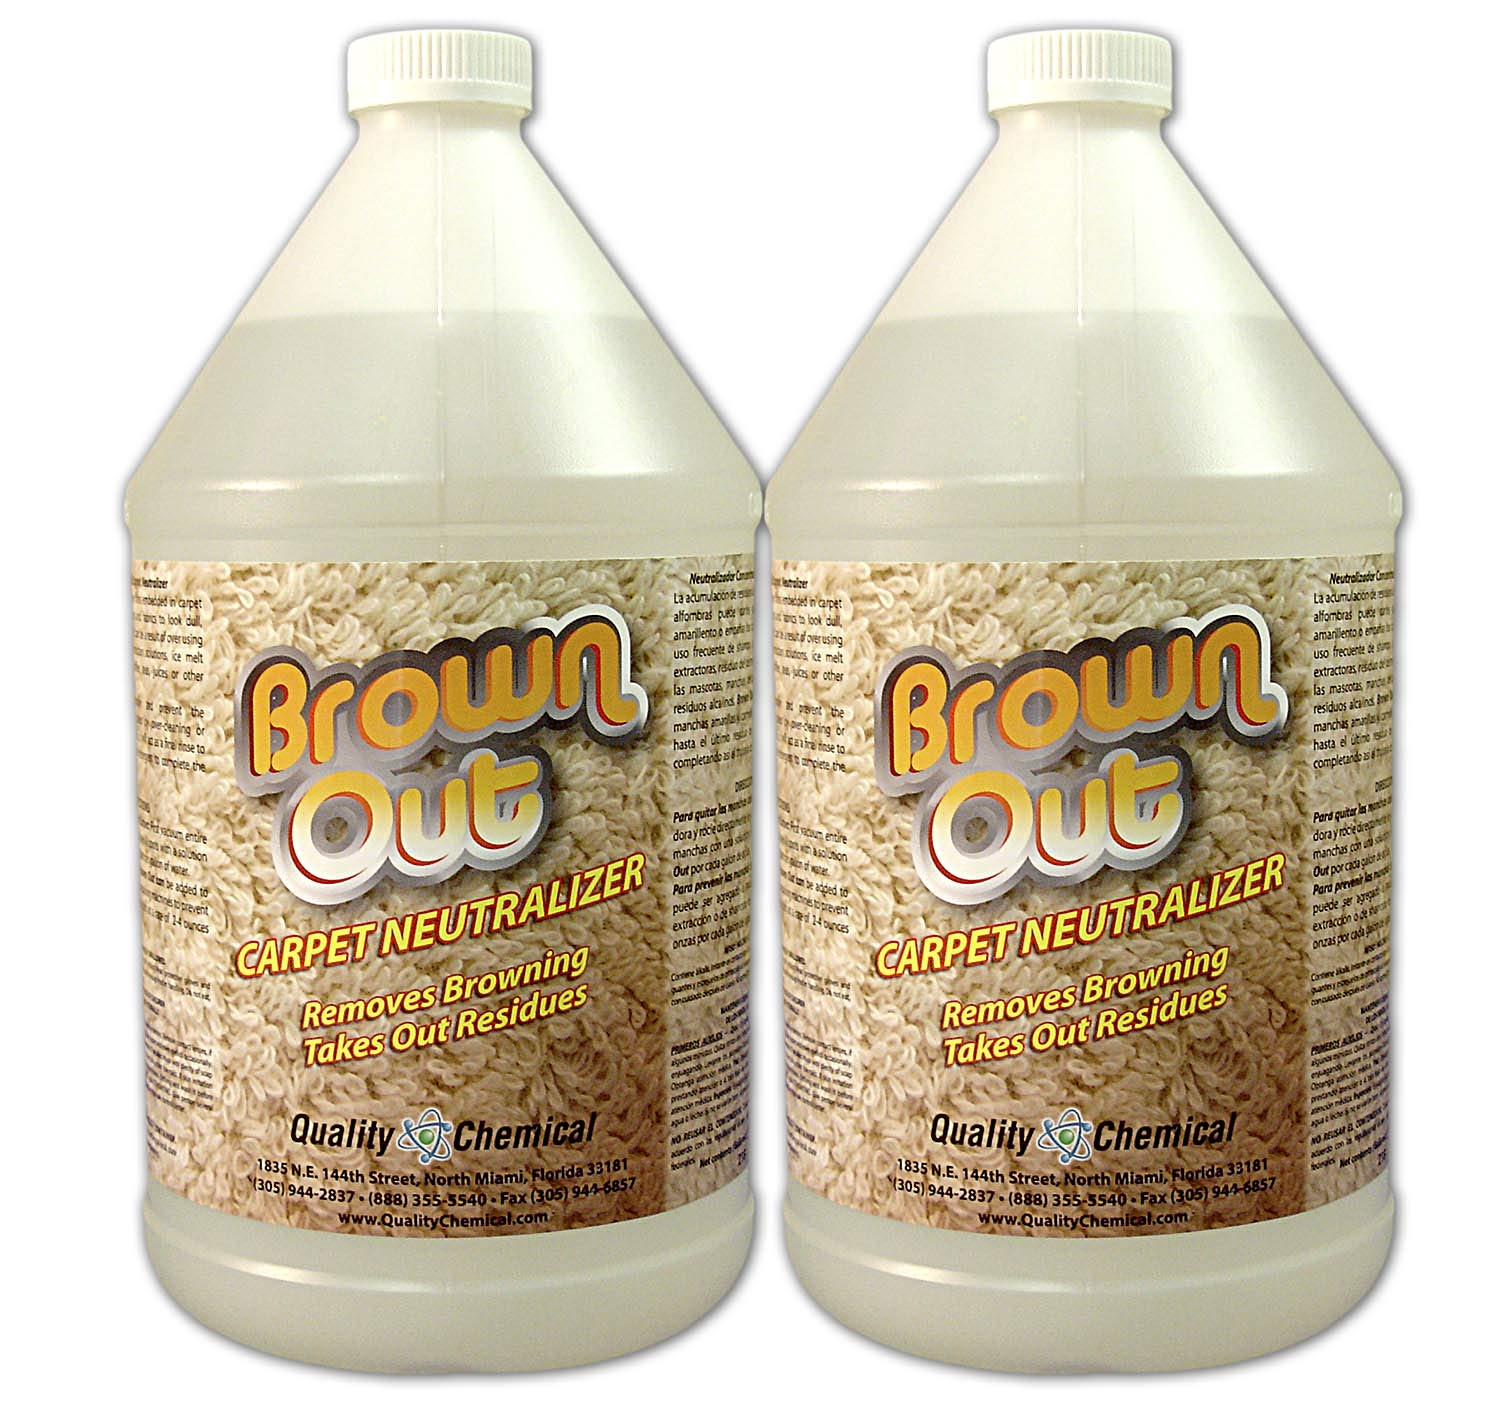 Brown Out Carpet Neutralizer and Stain Remover-2 gallon case by Quality Chemical